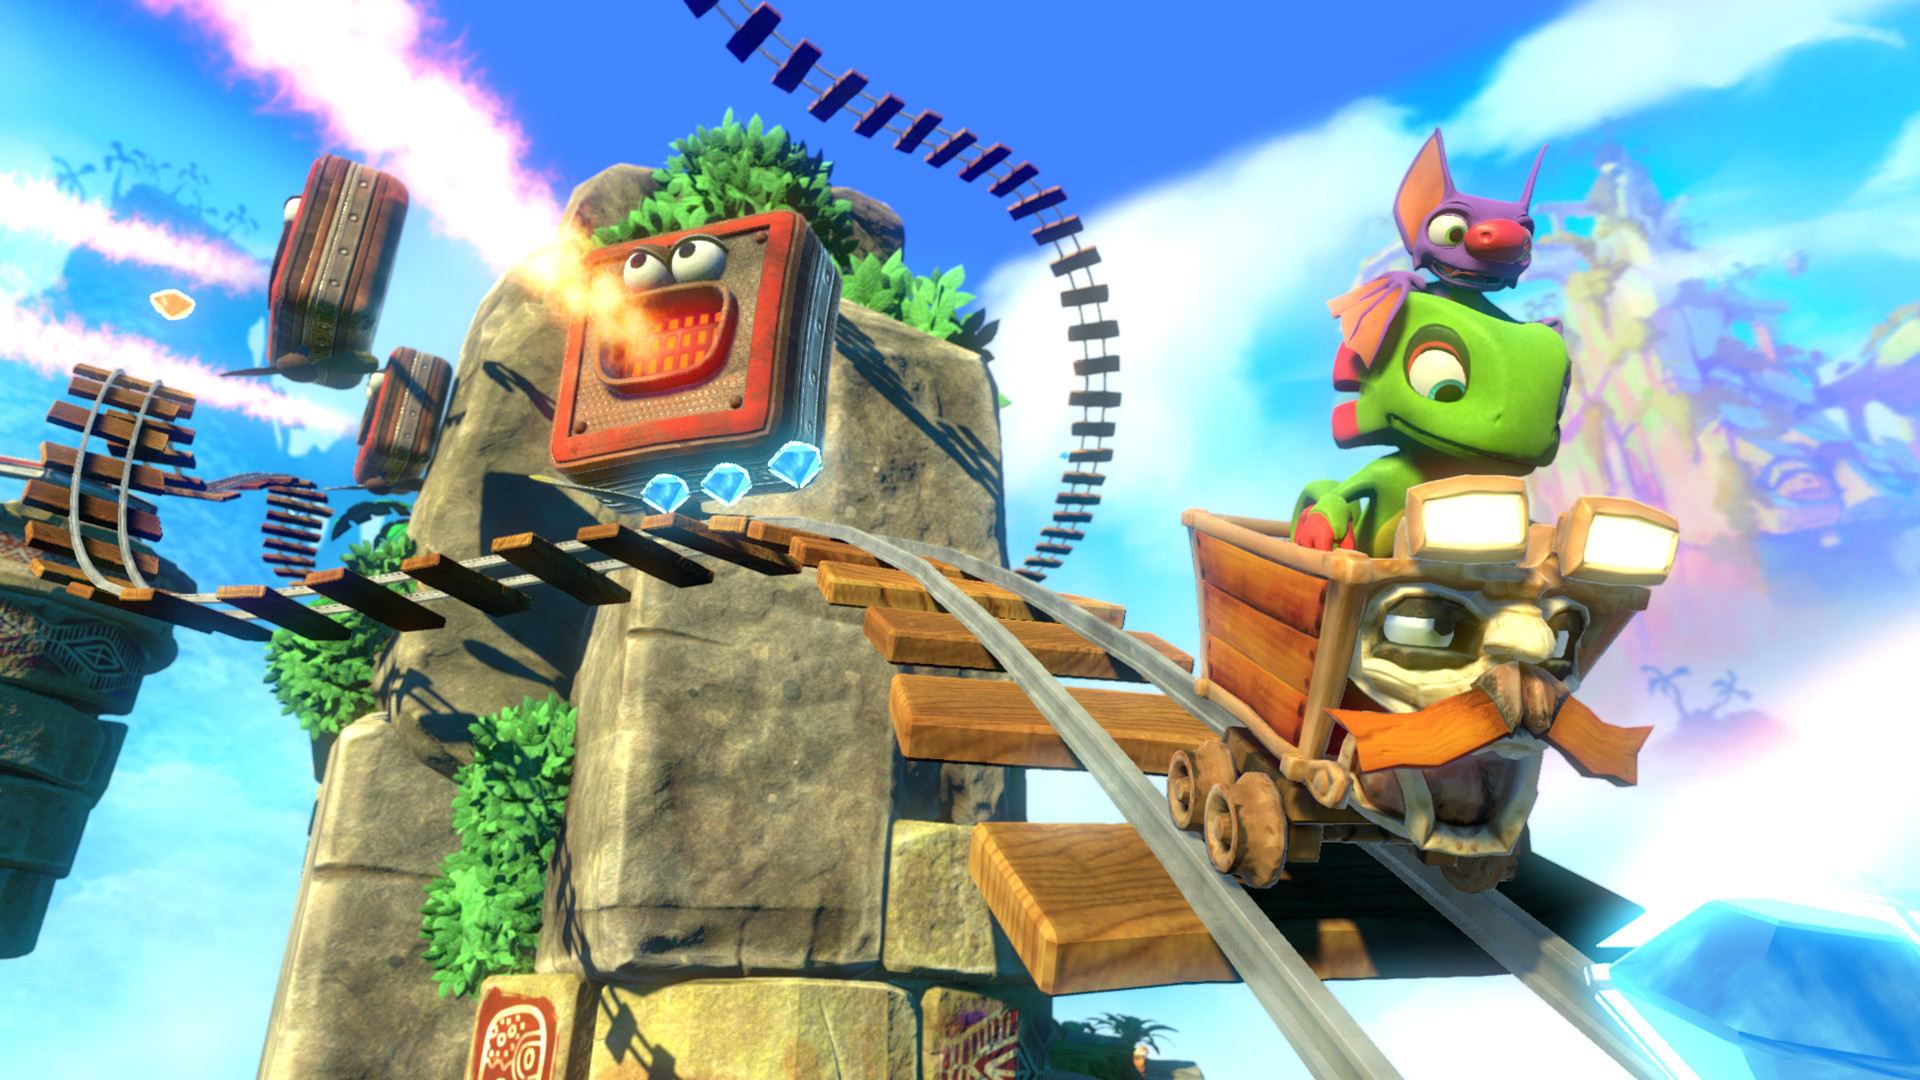 Yooka-Laylee's issues should be fixed by the time the Switch version arrives